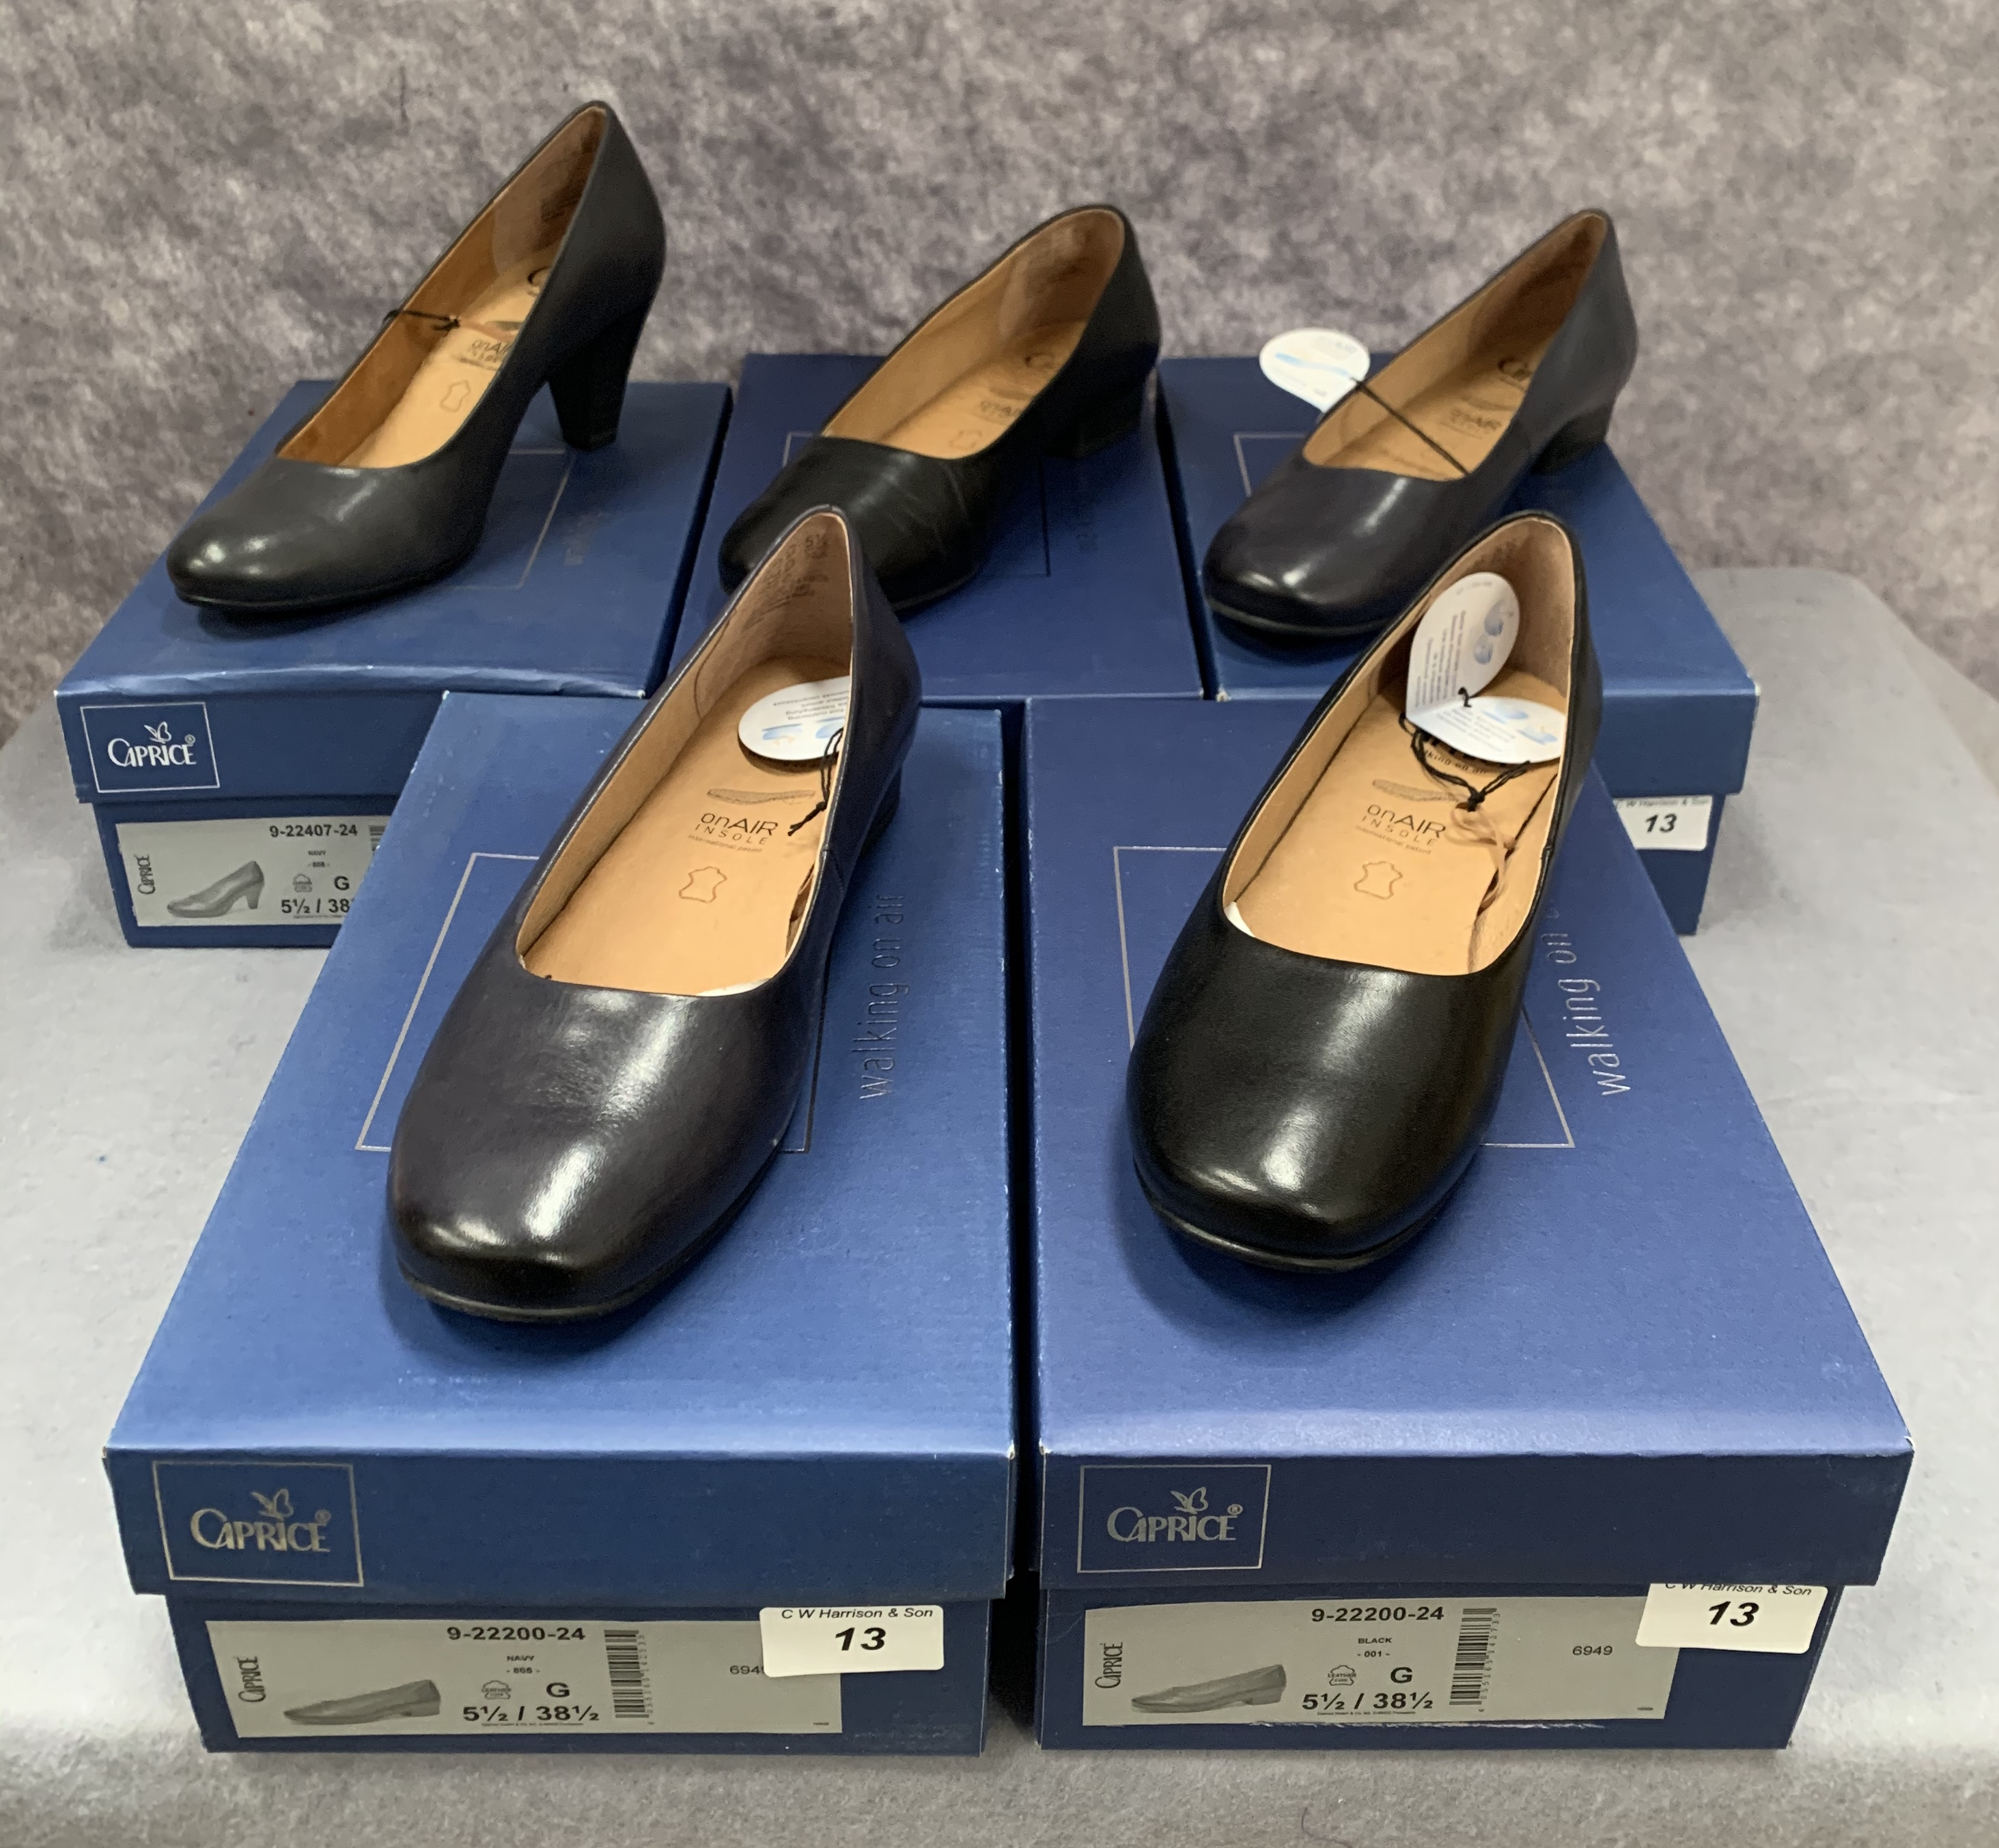 Five pairs of Caprice ladies shoes in black (2) and navy (3), various styles, size 5½,